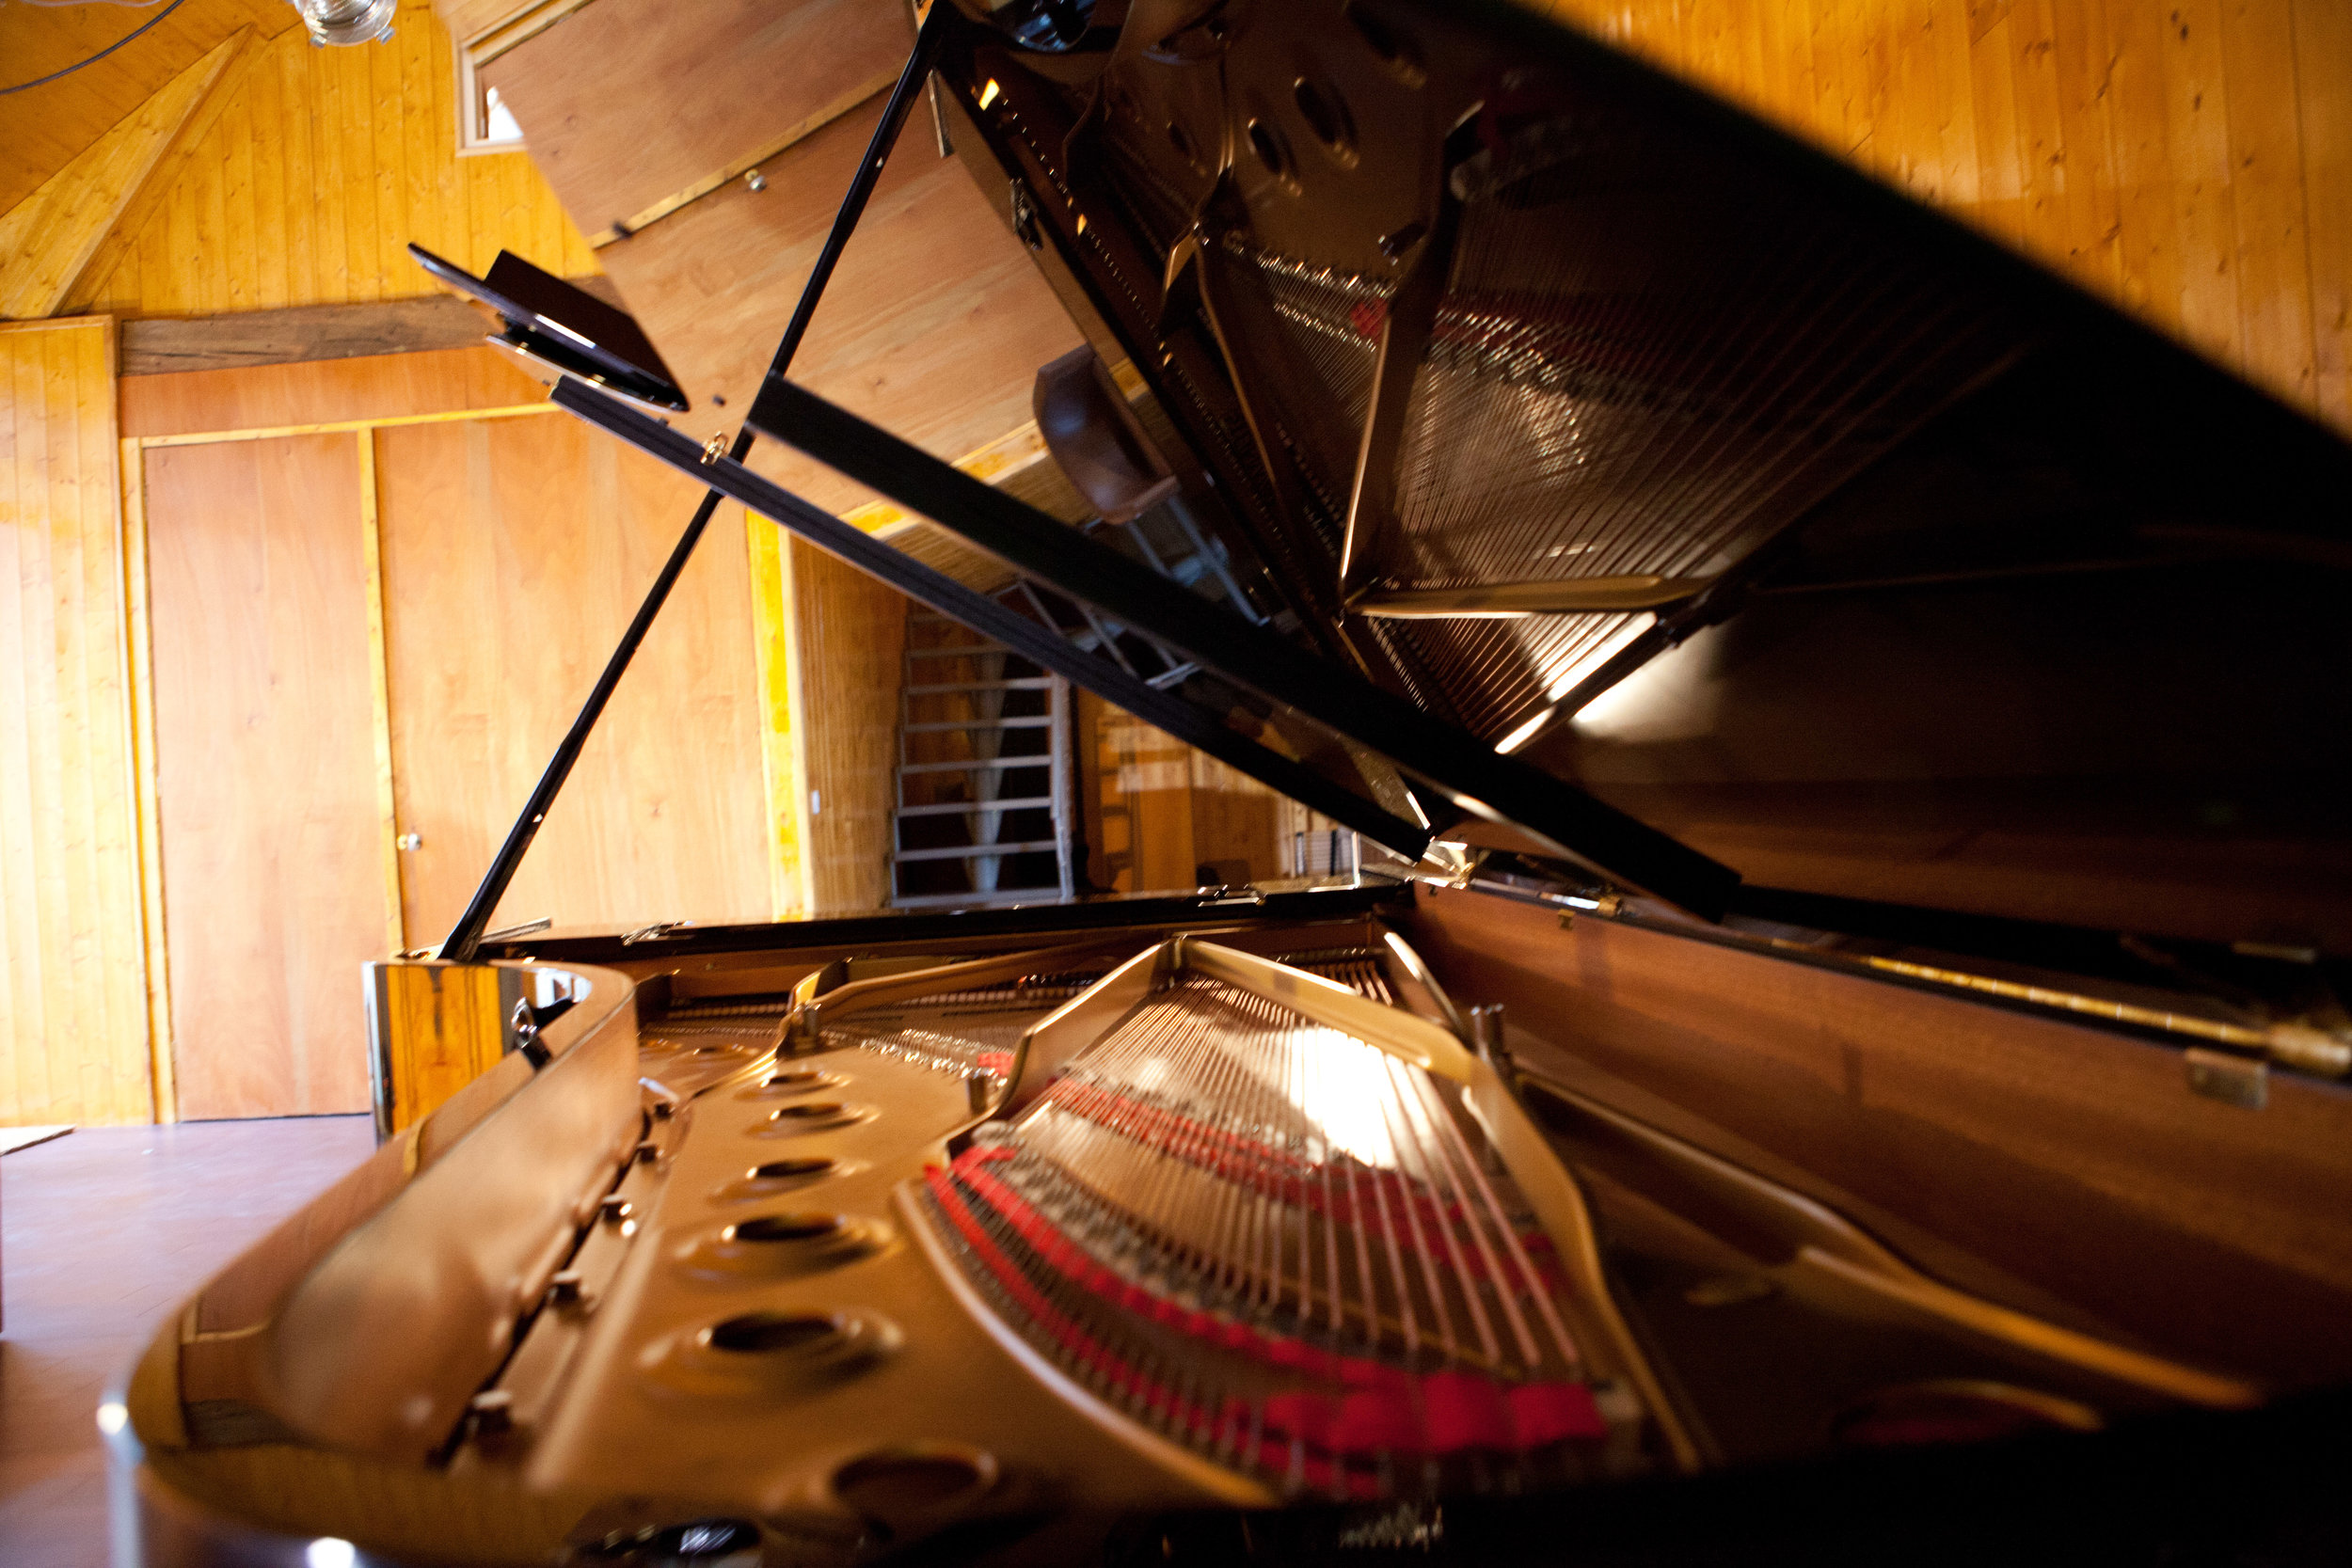 Piano Steinway & Sons Grand Concert D 274